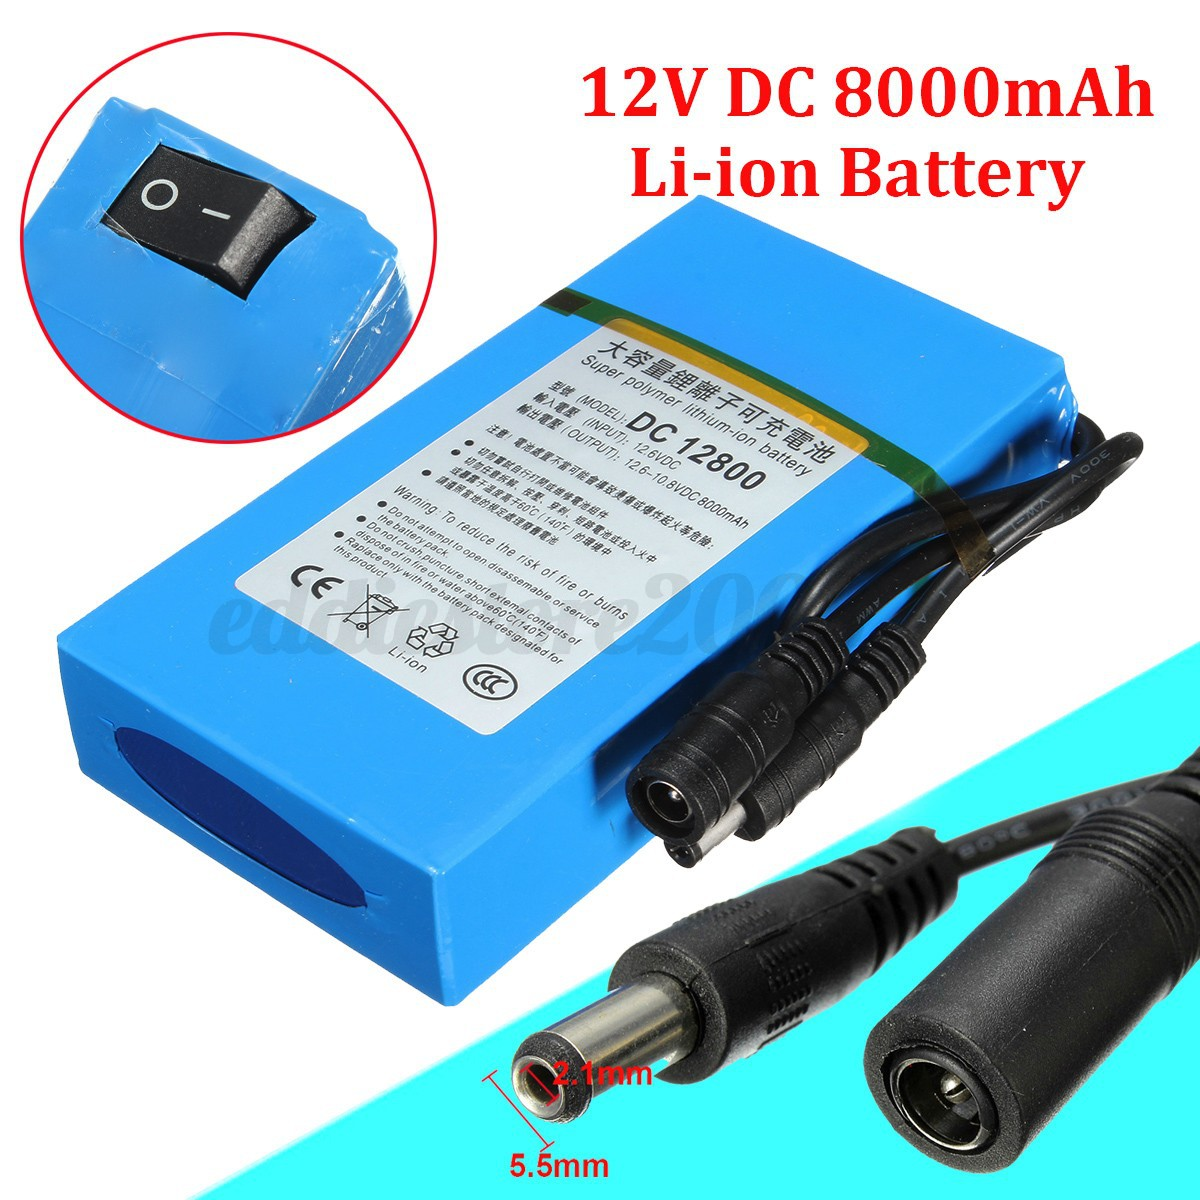 DC 12V 8000mAh DC 12800 Rechargeable Portable Li-ion Battery for ...